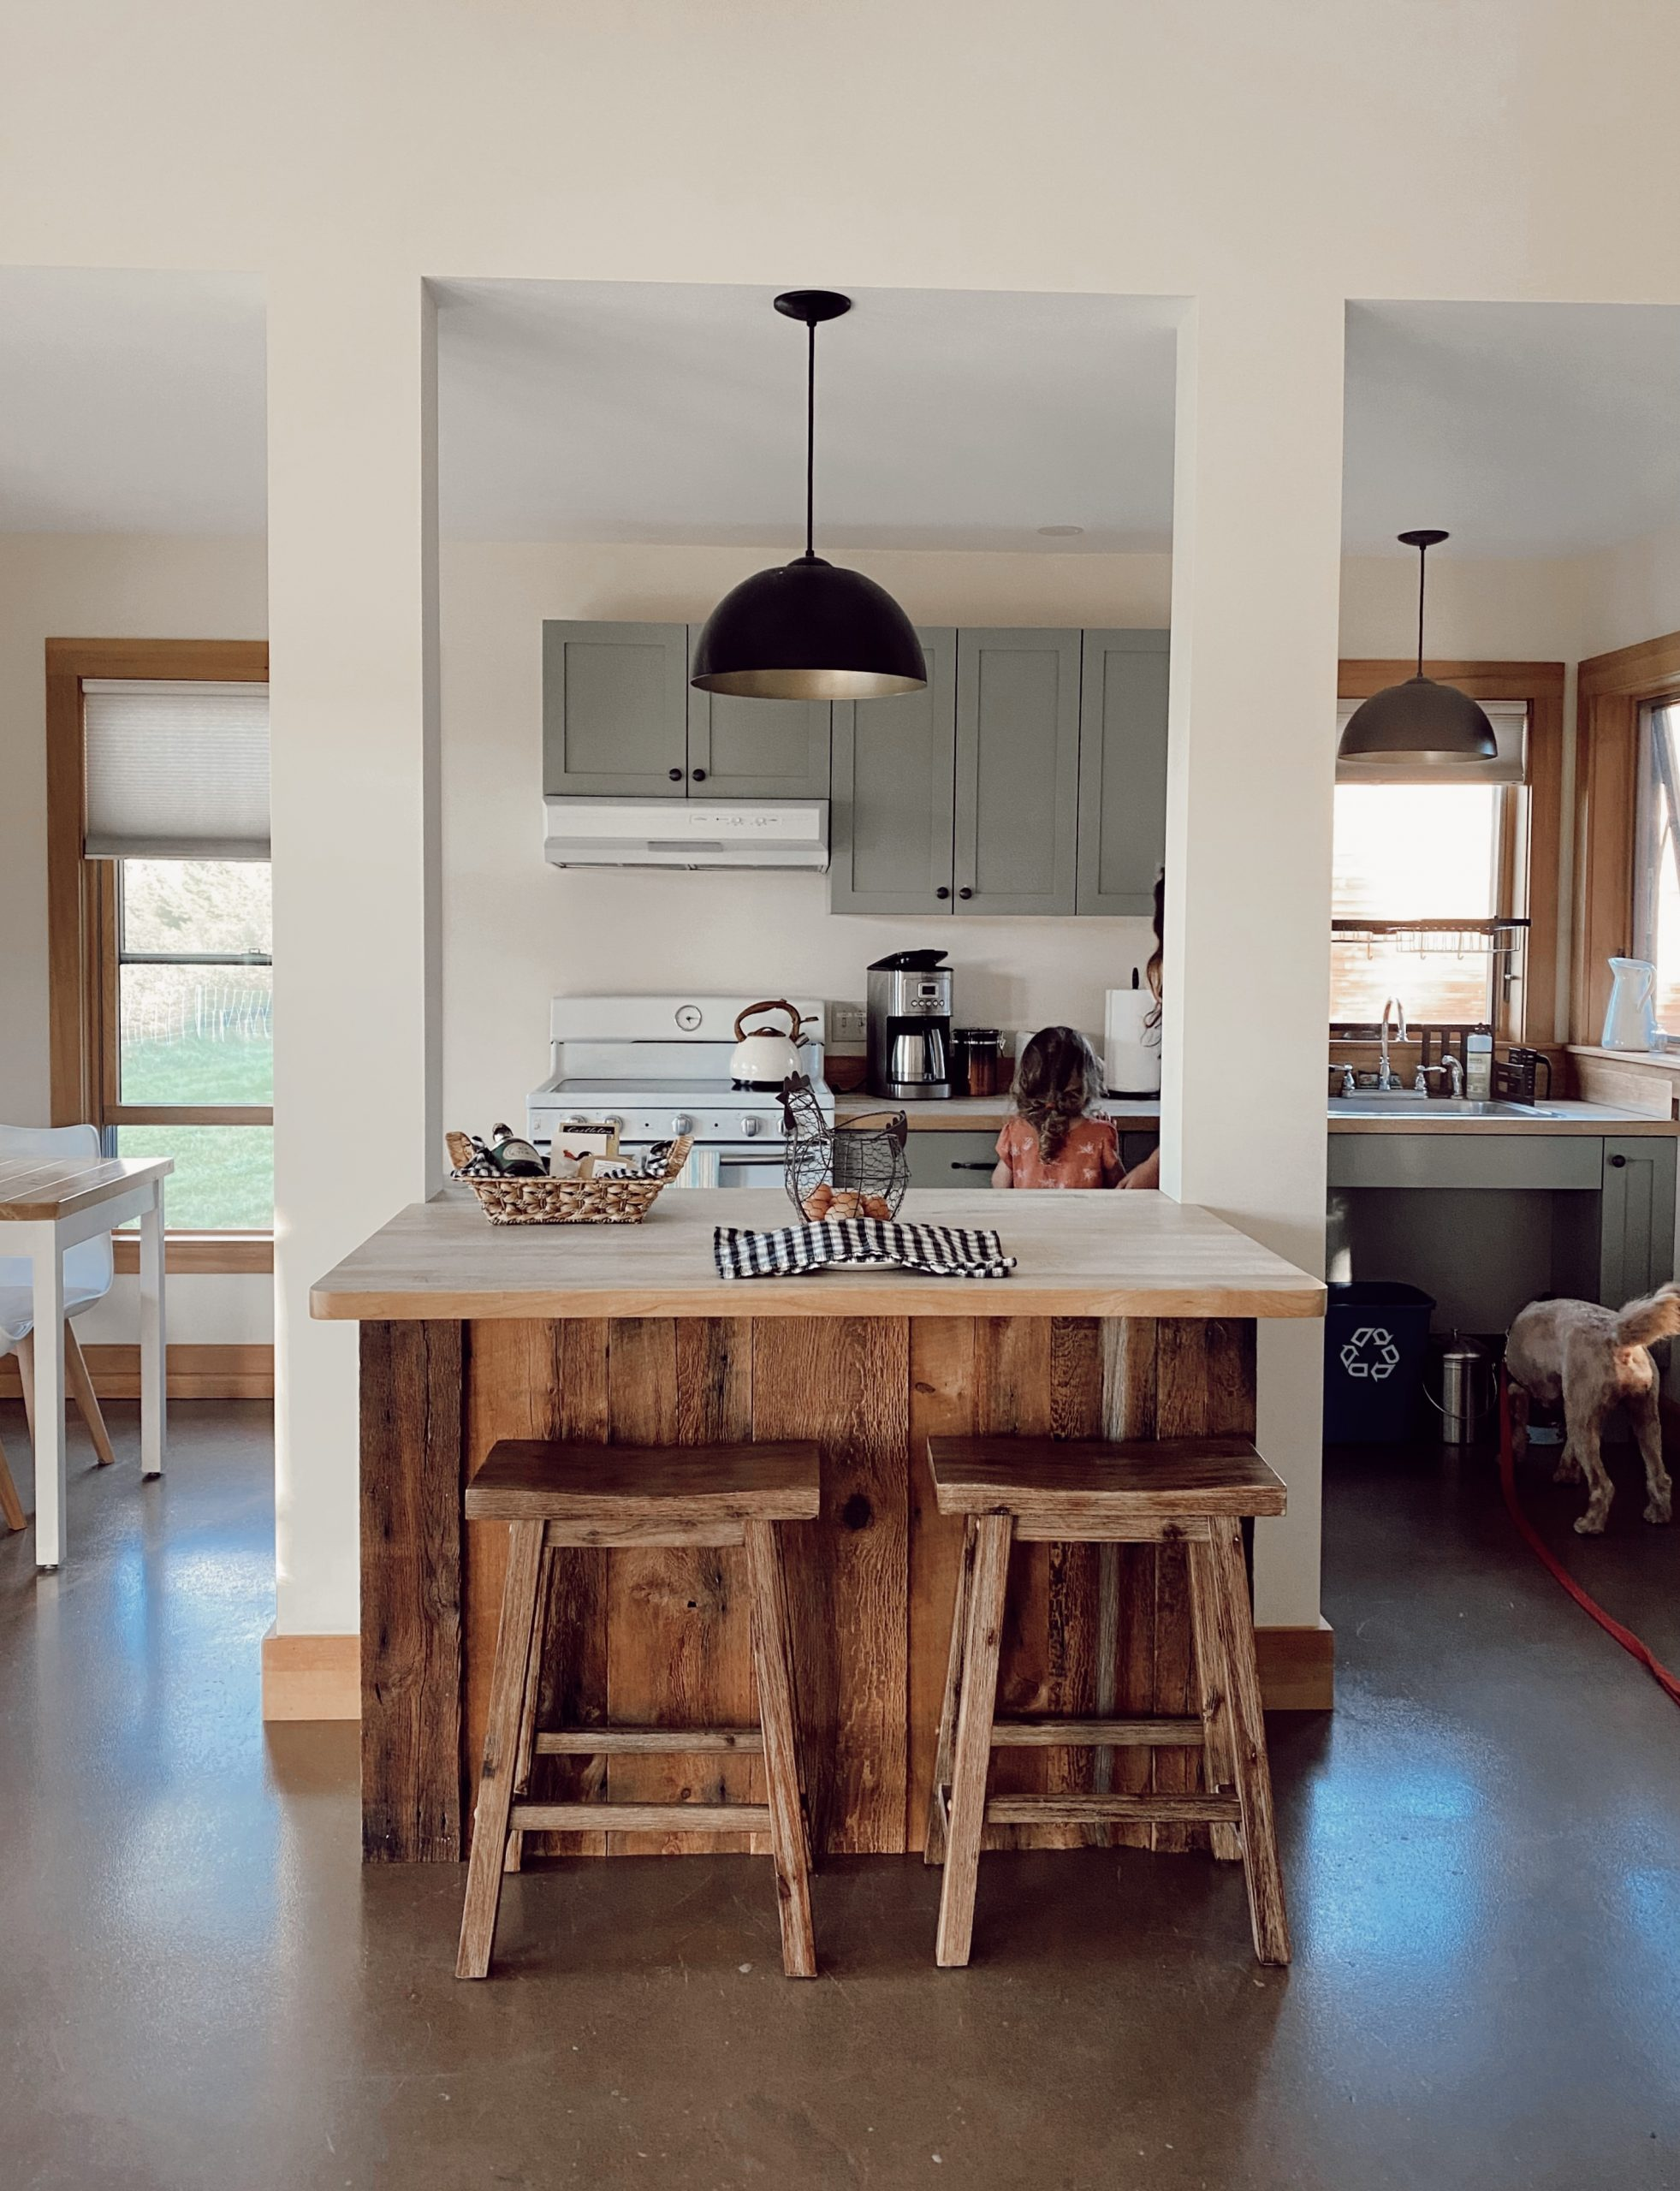 a cabin kitchen with wooden counter tops, stools and green cabinetry